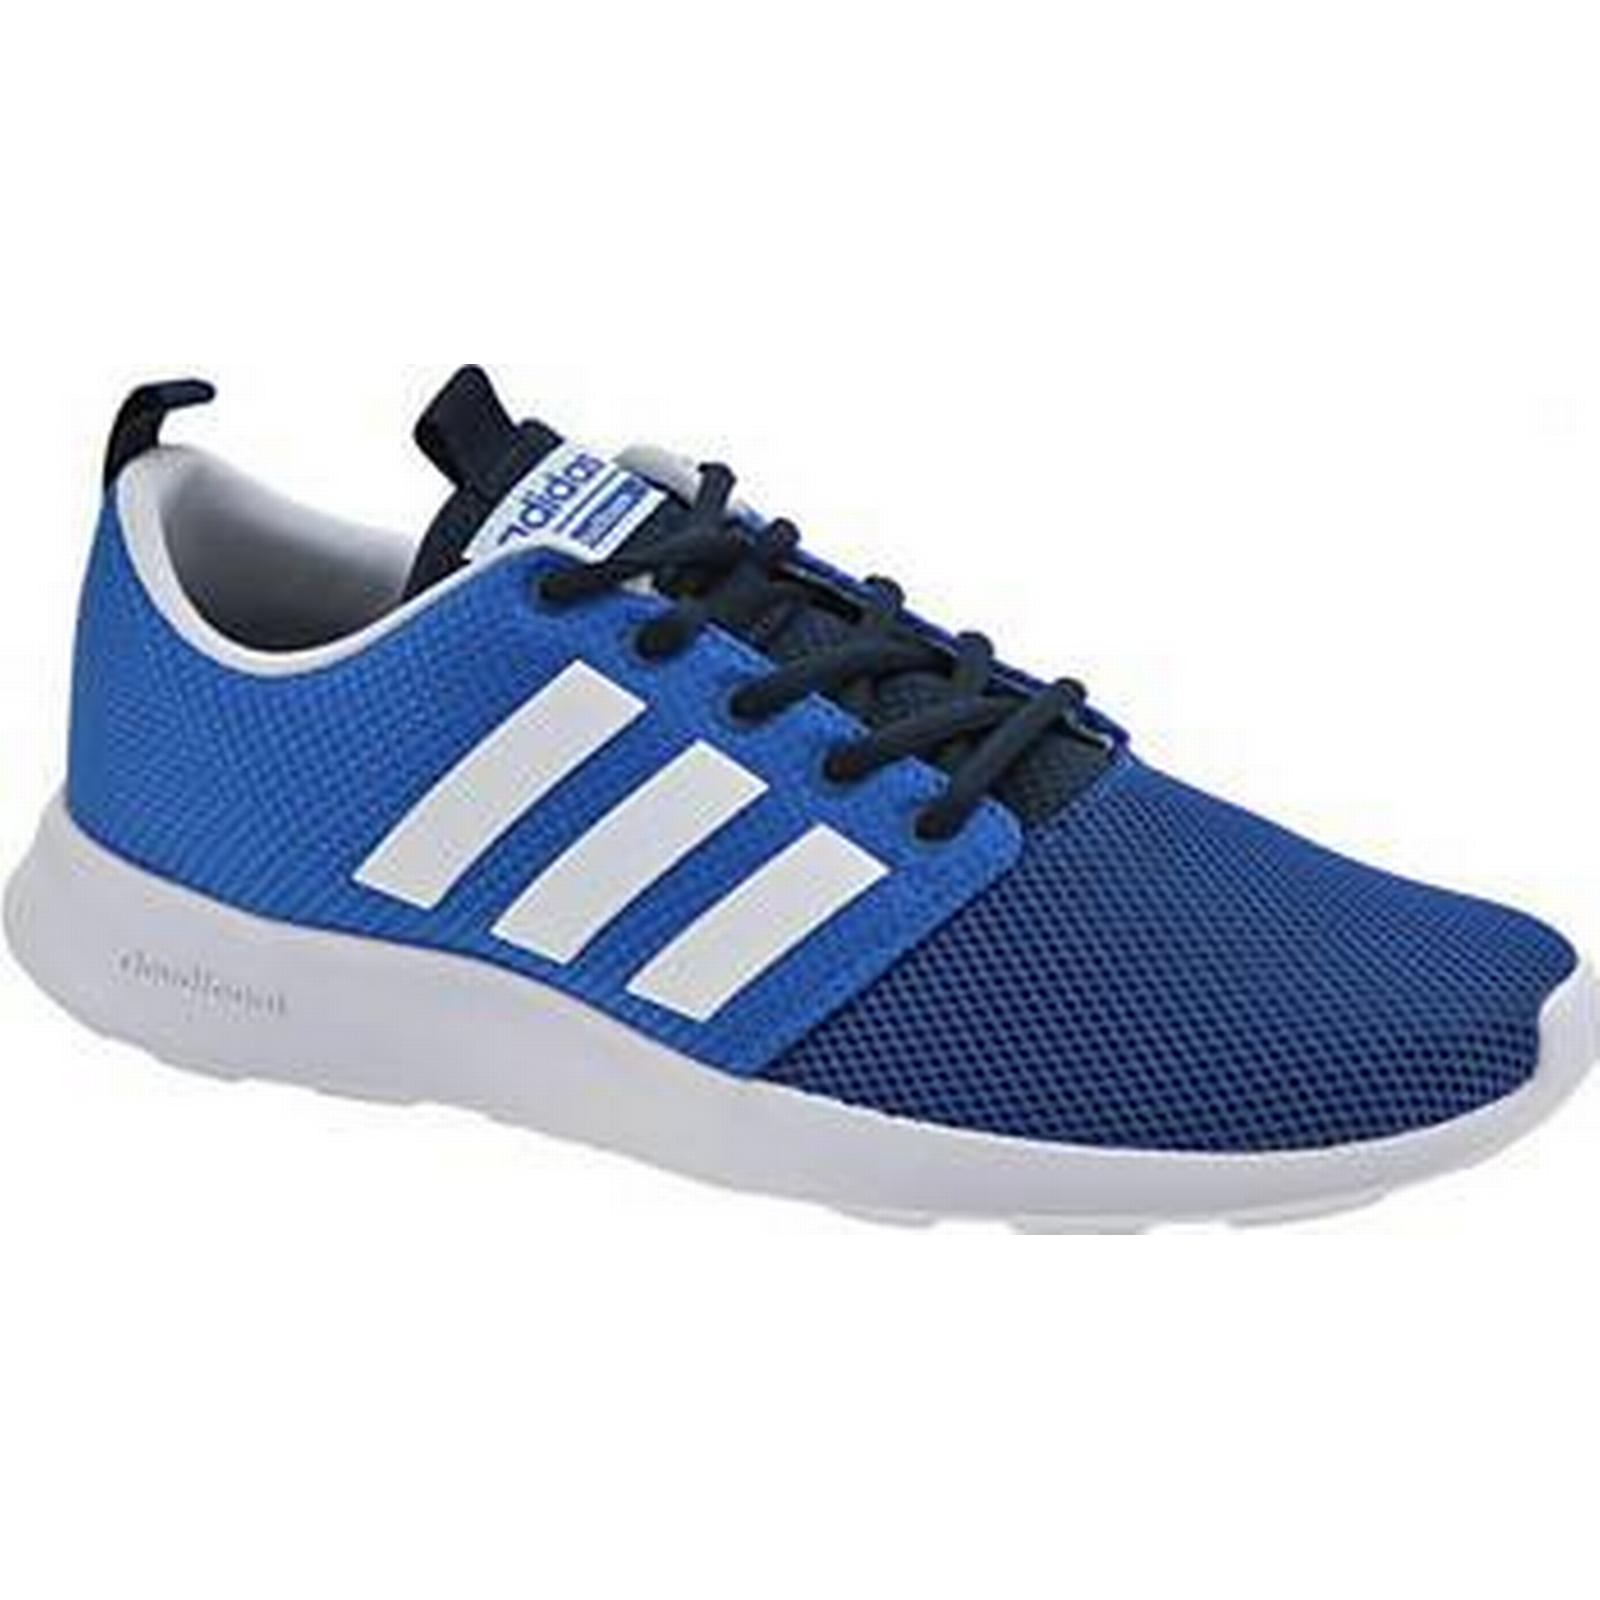 spartoo.co.uk spartoo.co.uk spartoo.co.uk adidas cloudfoam swift hommes & #  ; s Chaussure s formateurs en bleu 29feaa